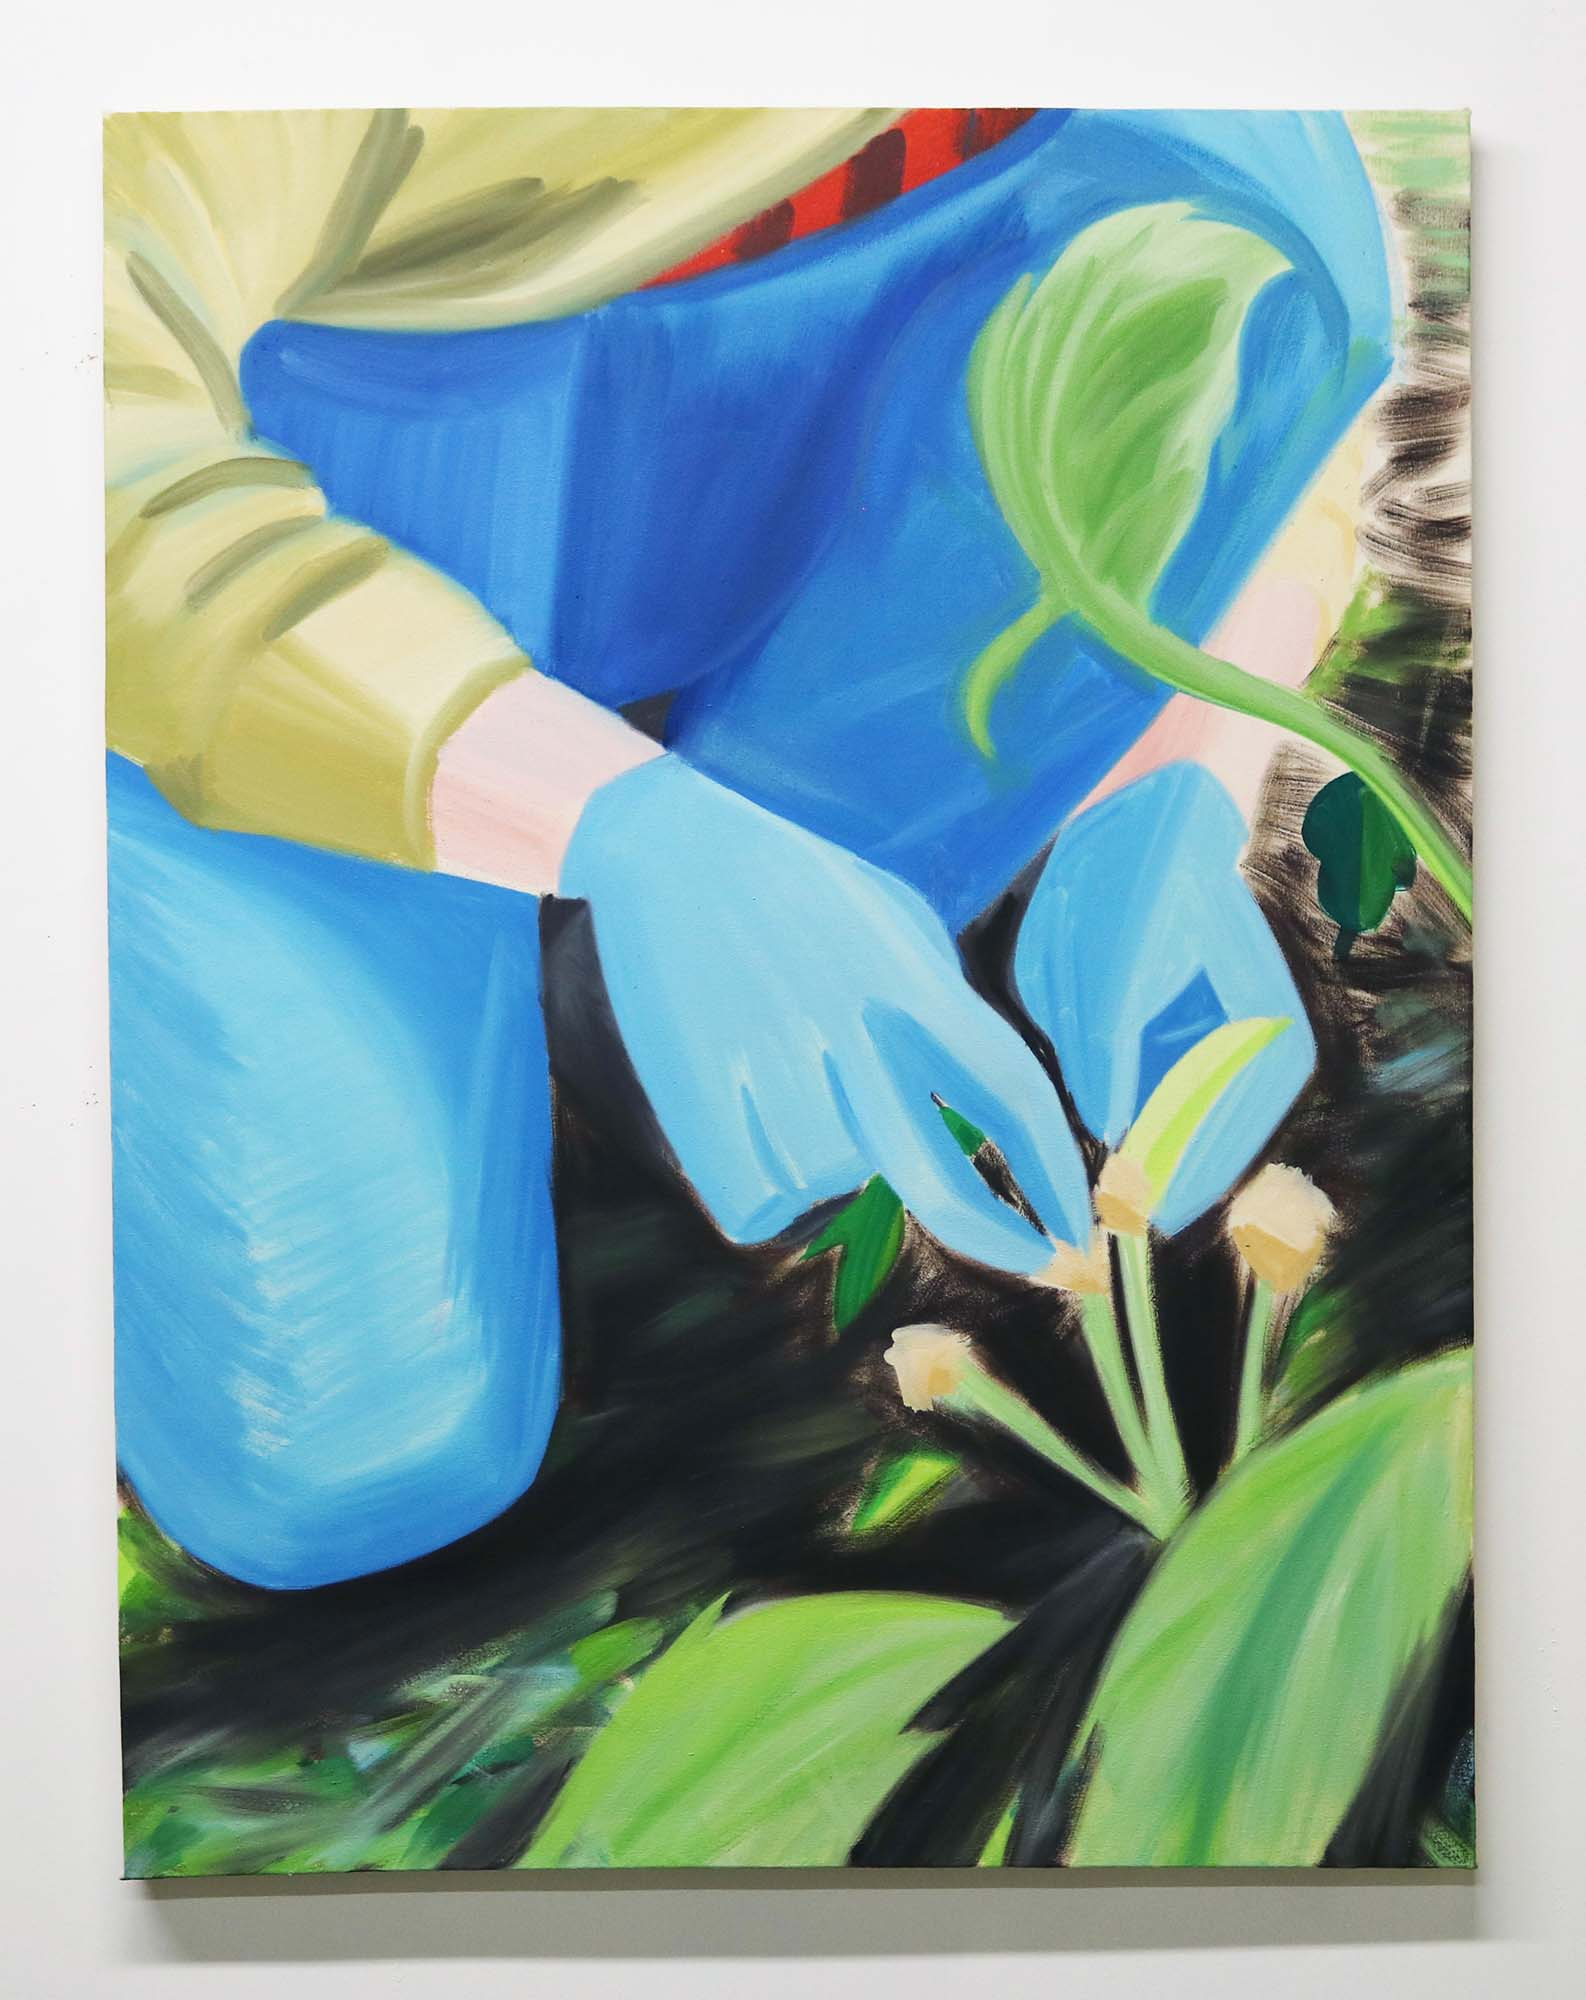 Grace Mattingly, Emma in the Garden II, Oil on canvas, 36